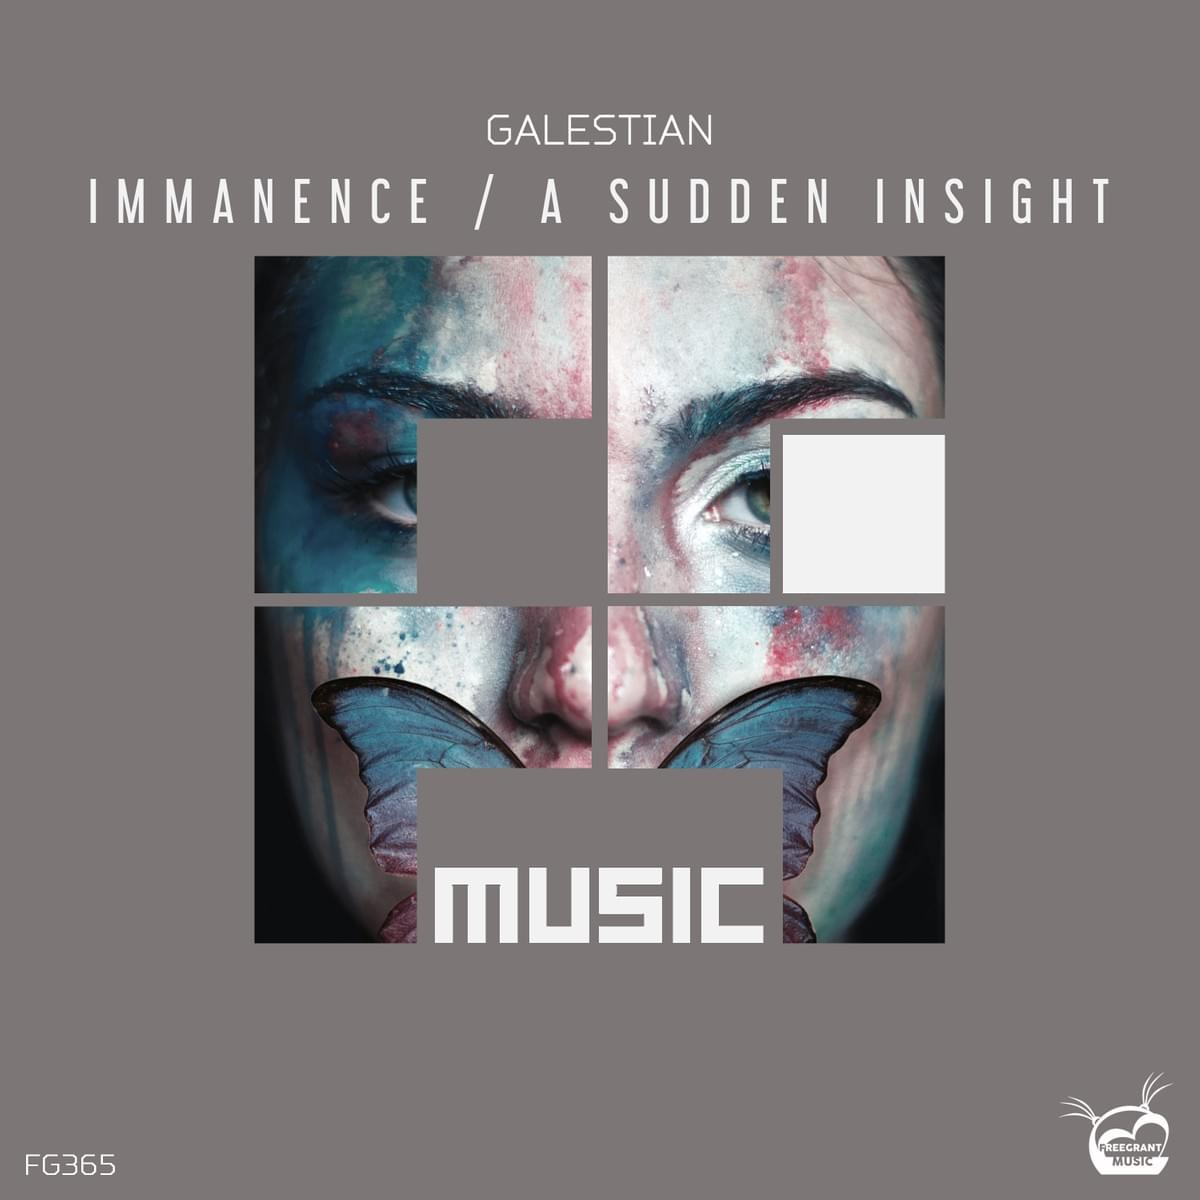 Galestian - Immanence / A Sudden Insight EP